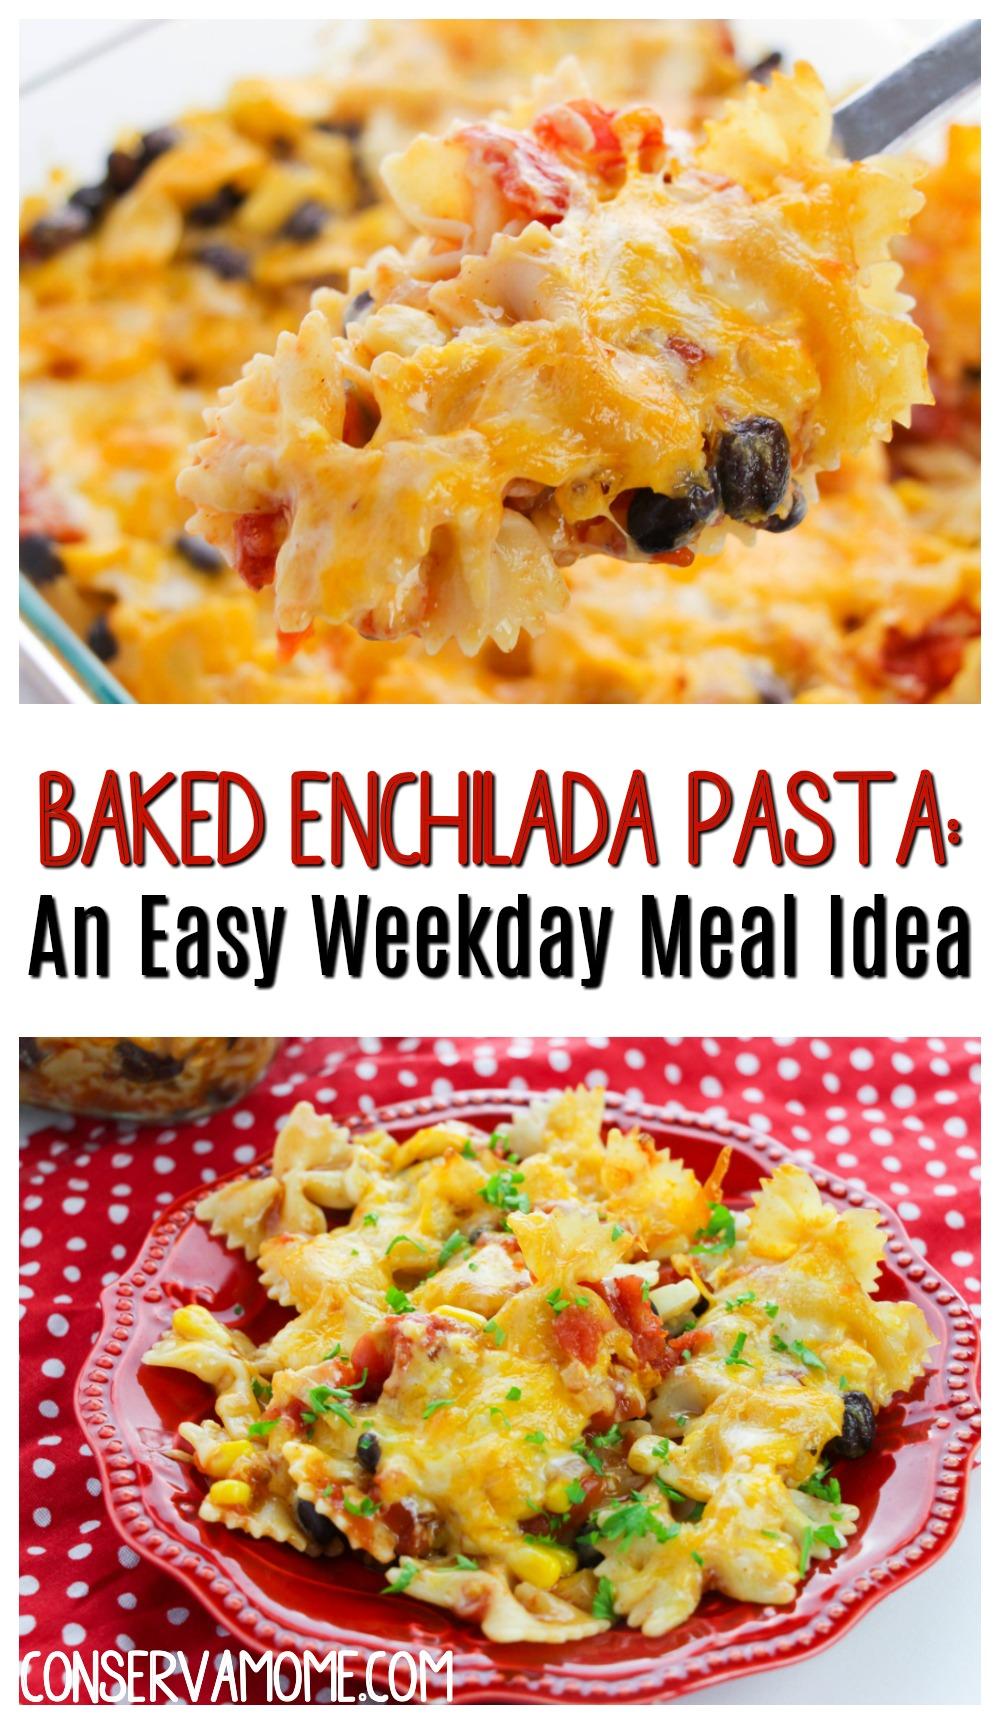 Baked Enchilada Pasta: An Easy Weekday Meal Idea